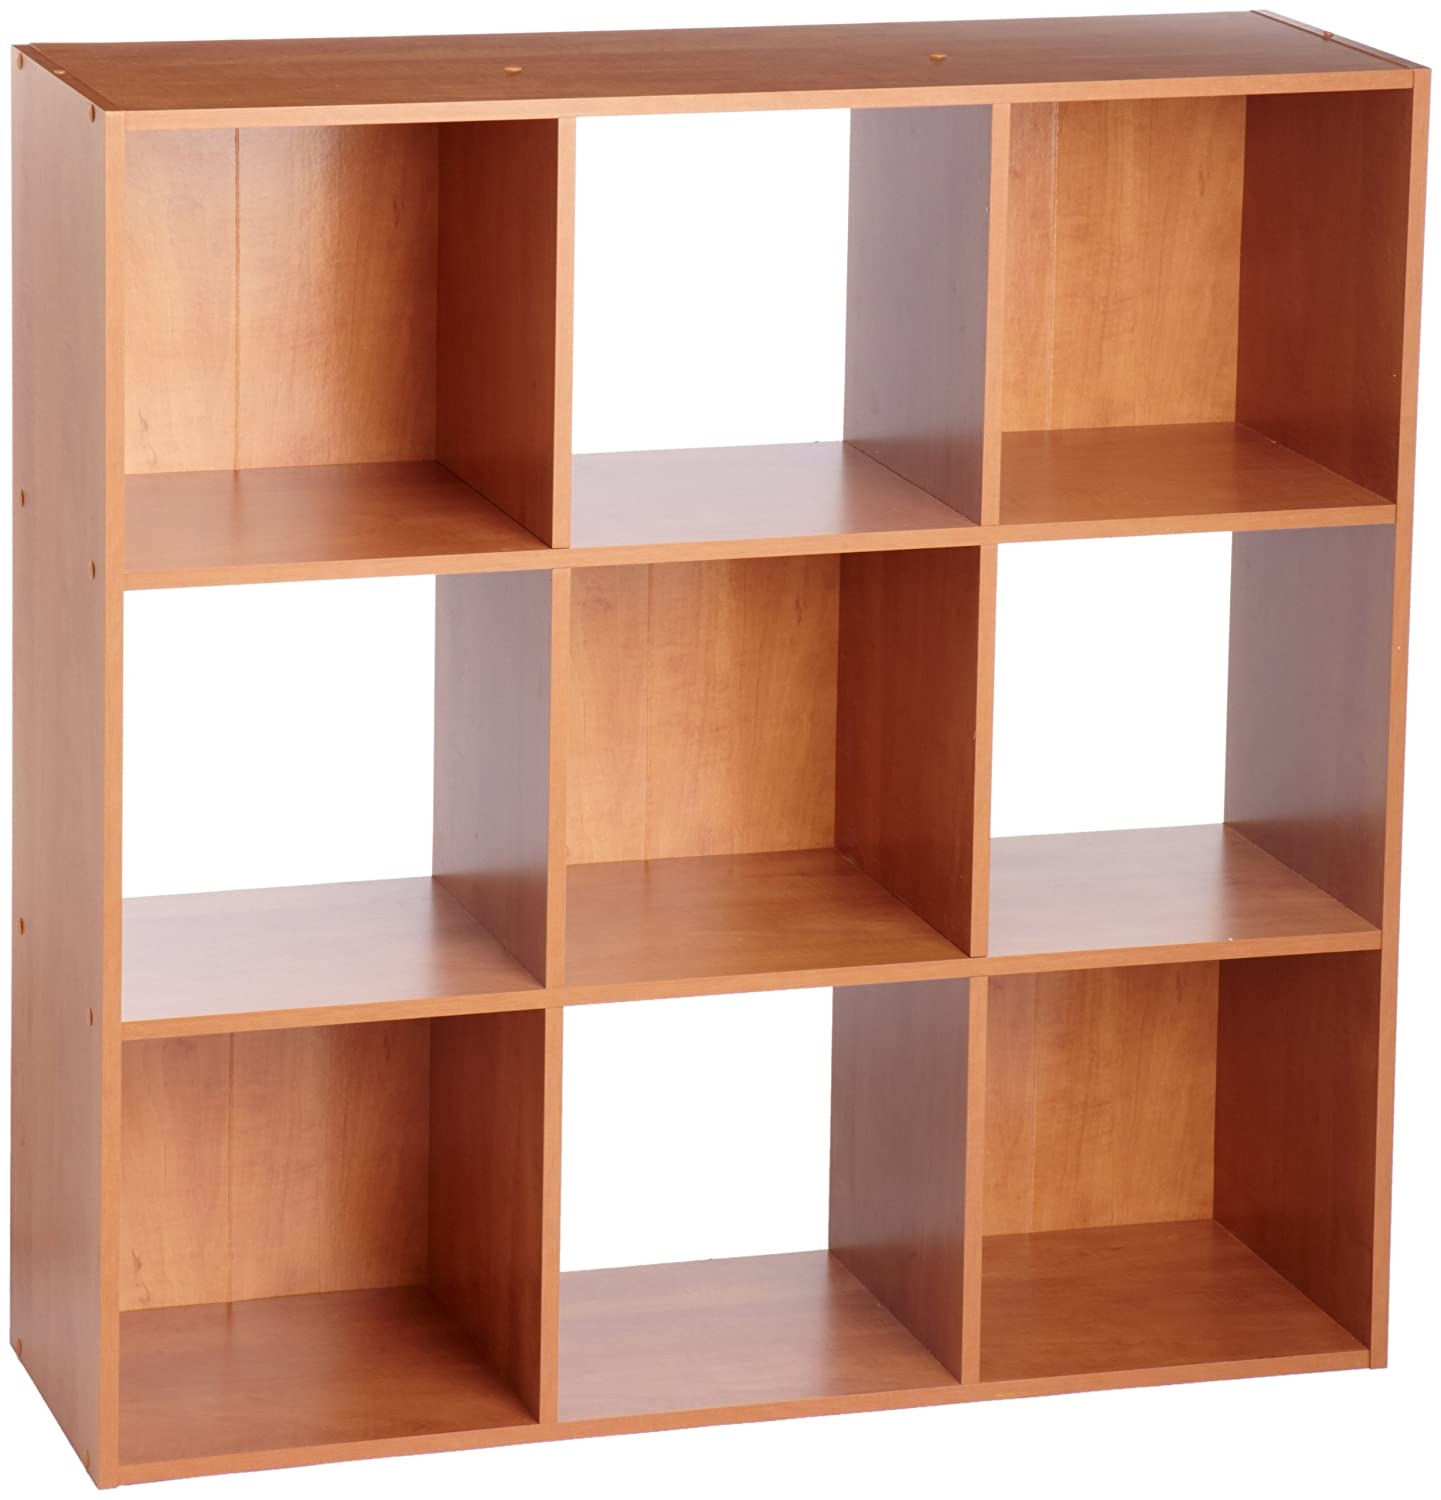 ikea bookcase cubes design magic shelves desk shelf unit top cabinet drawers black cube storage office furniture with